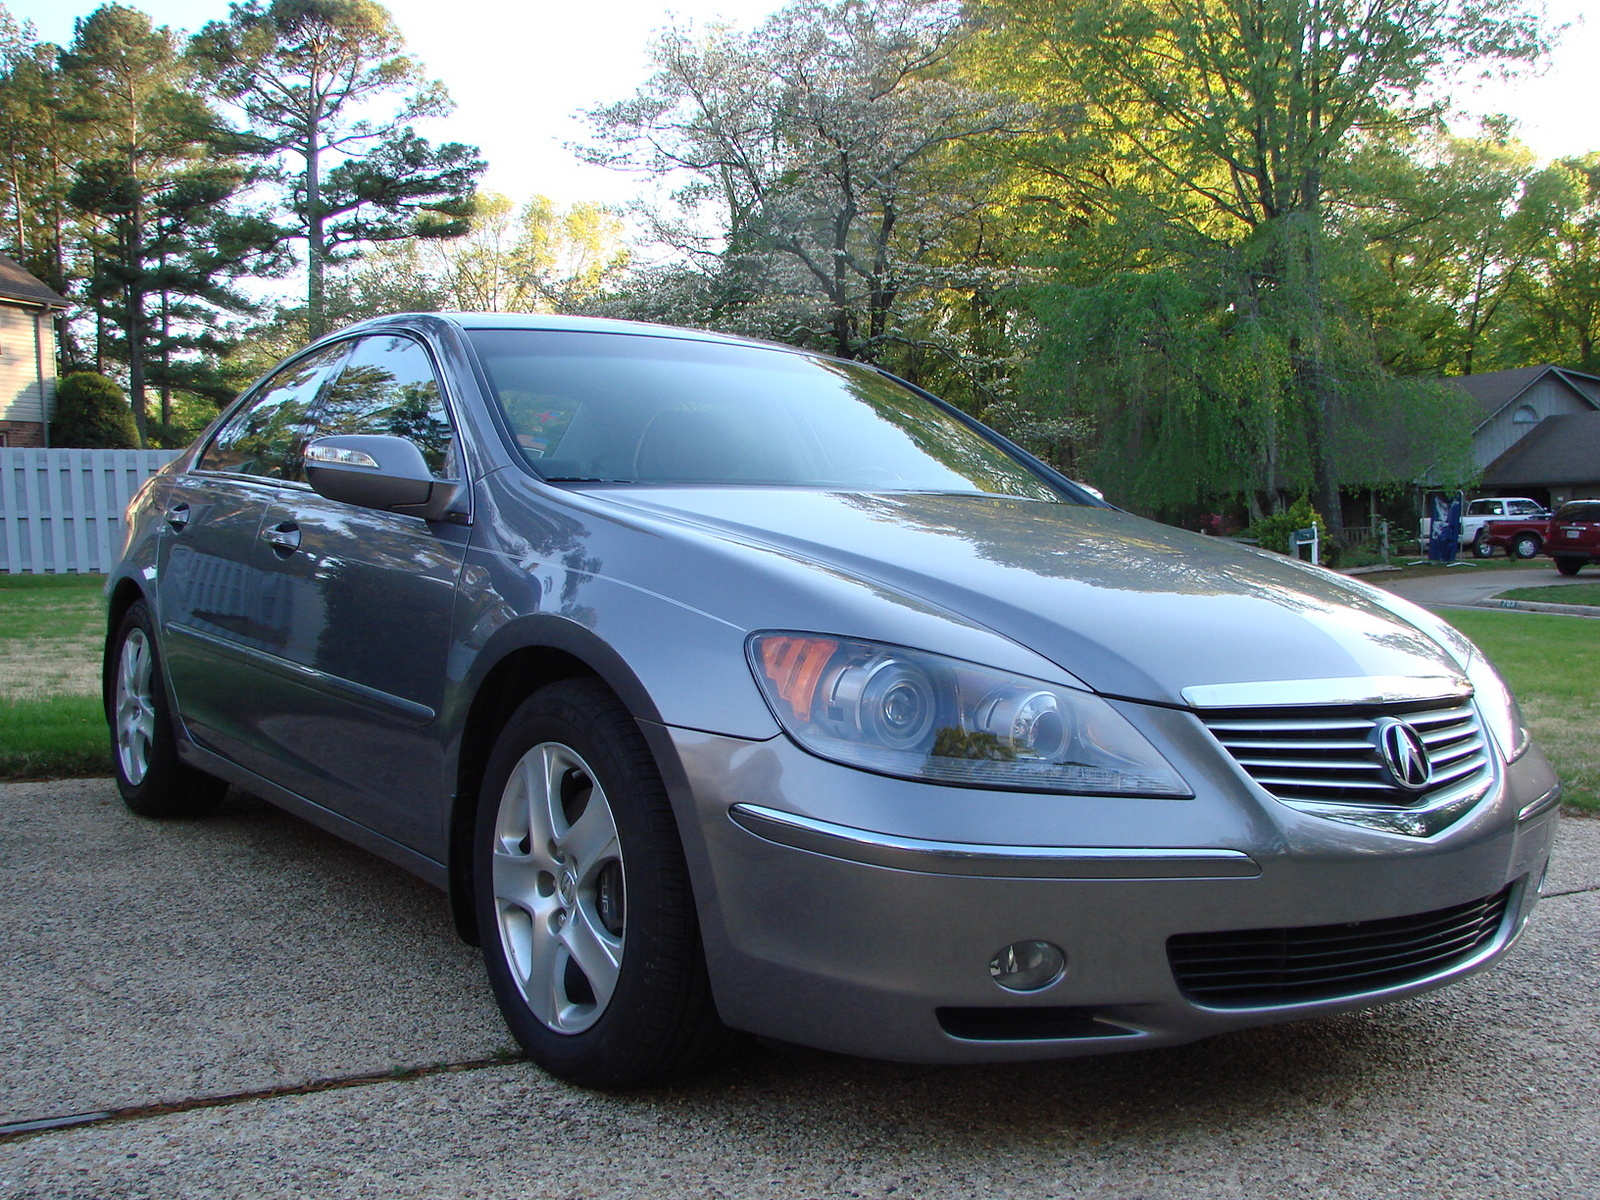 Acura RL Overview CarGurus - Acura rl 2006 for sale